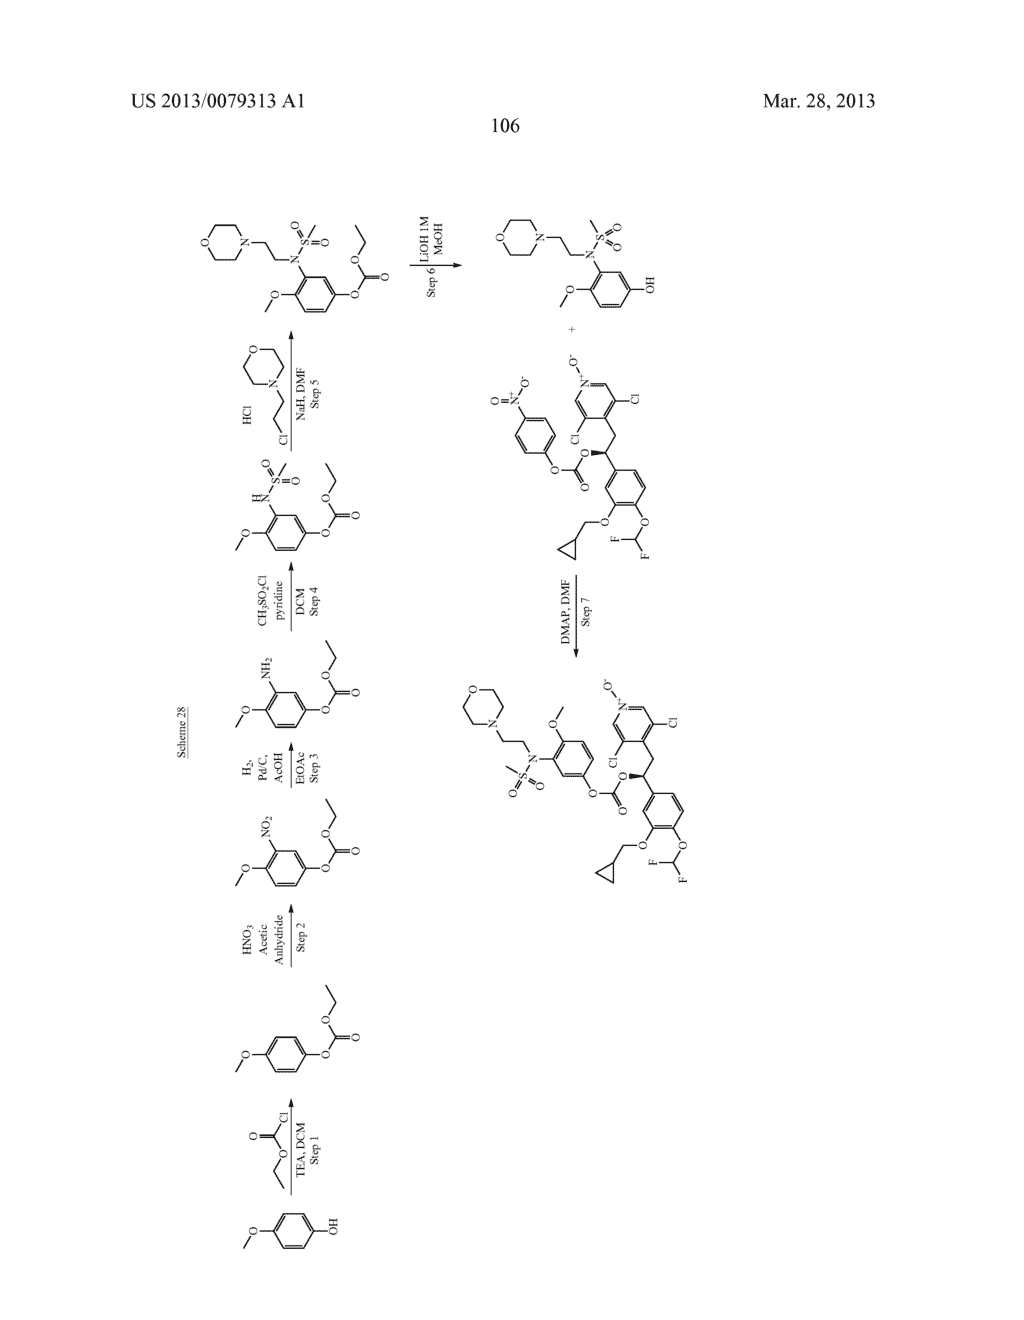 DERIVATIVES OF 1-PHENYL-2-PYRIDINYL ALKYL ALCOHOLS AS PHOSPHODIESTERASE     INHIBITORS - diagram, schematic, and image 107